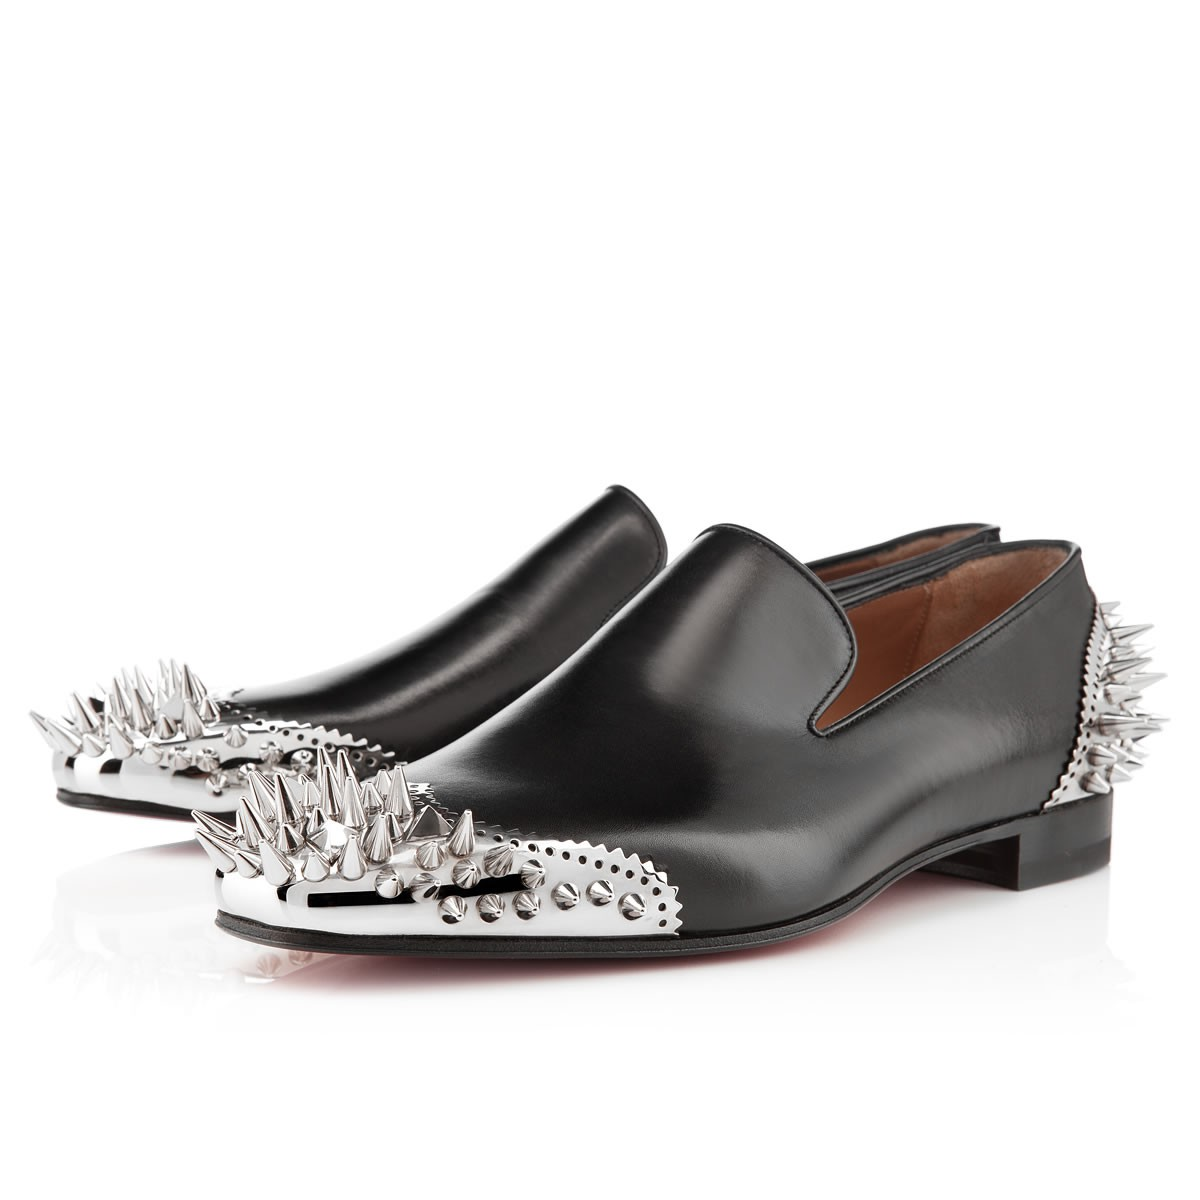 677a794ba508 ... toe  Henri Flat  – despite carrying a price tag 40% much more than the  full-on spiked-out version. This is one serious extravagant pair of  Louboutins.